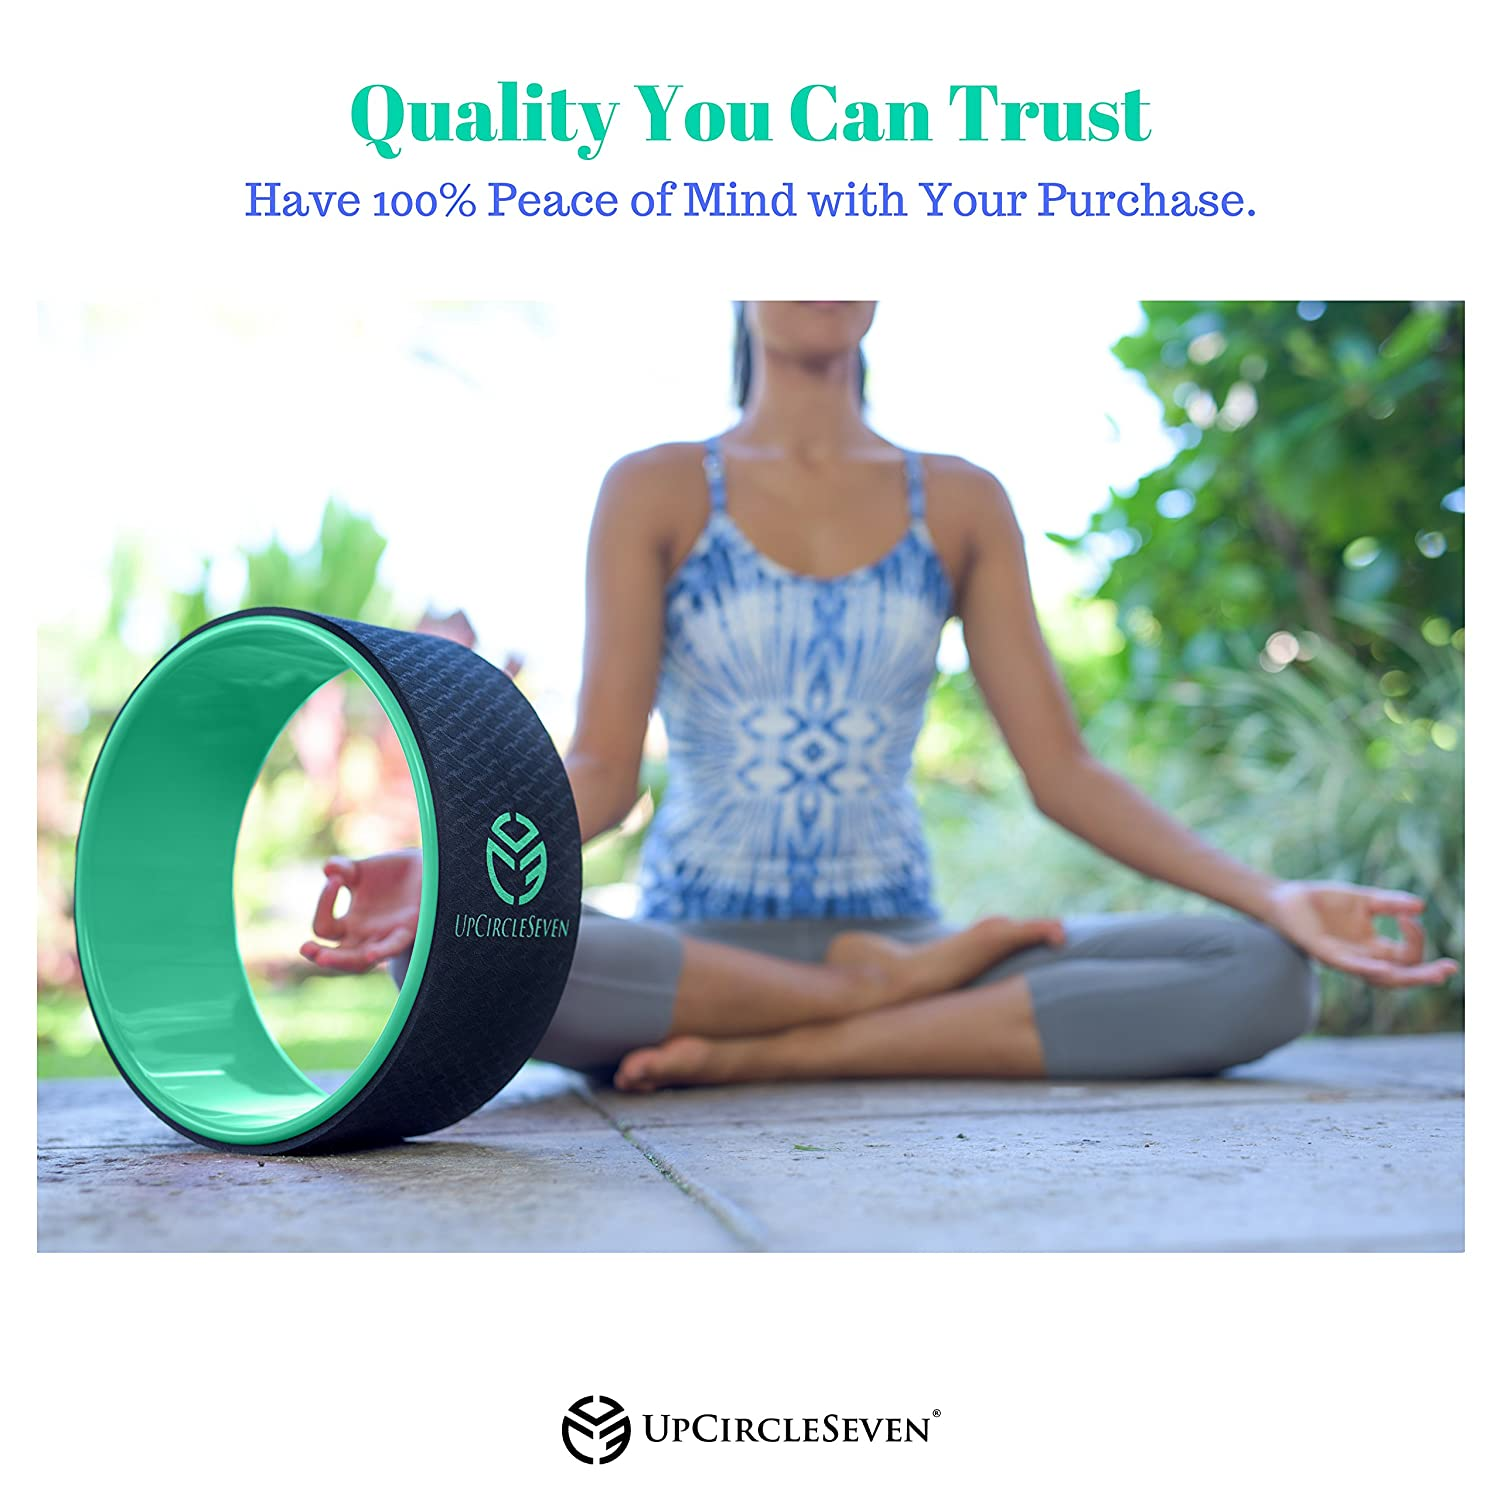 UpCircleSeven Yoga Wheel - Perfect Accessory for Stretching and Improving Backbends Pro Series Strongest /& Most Comfortable Dharma Yoga Prop Wheel 12 x 5 Inch Basic Perfect Platform for Stretching and Improving Backbends Wood